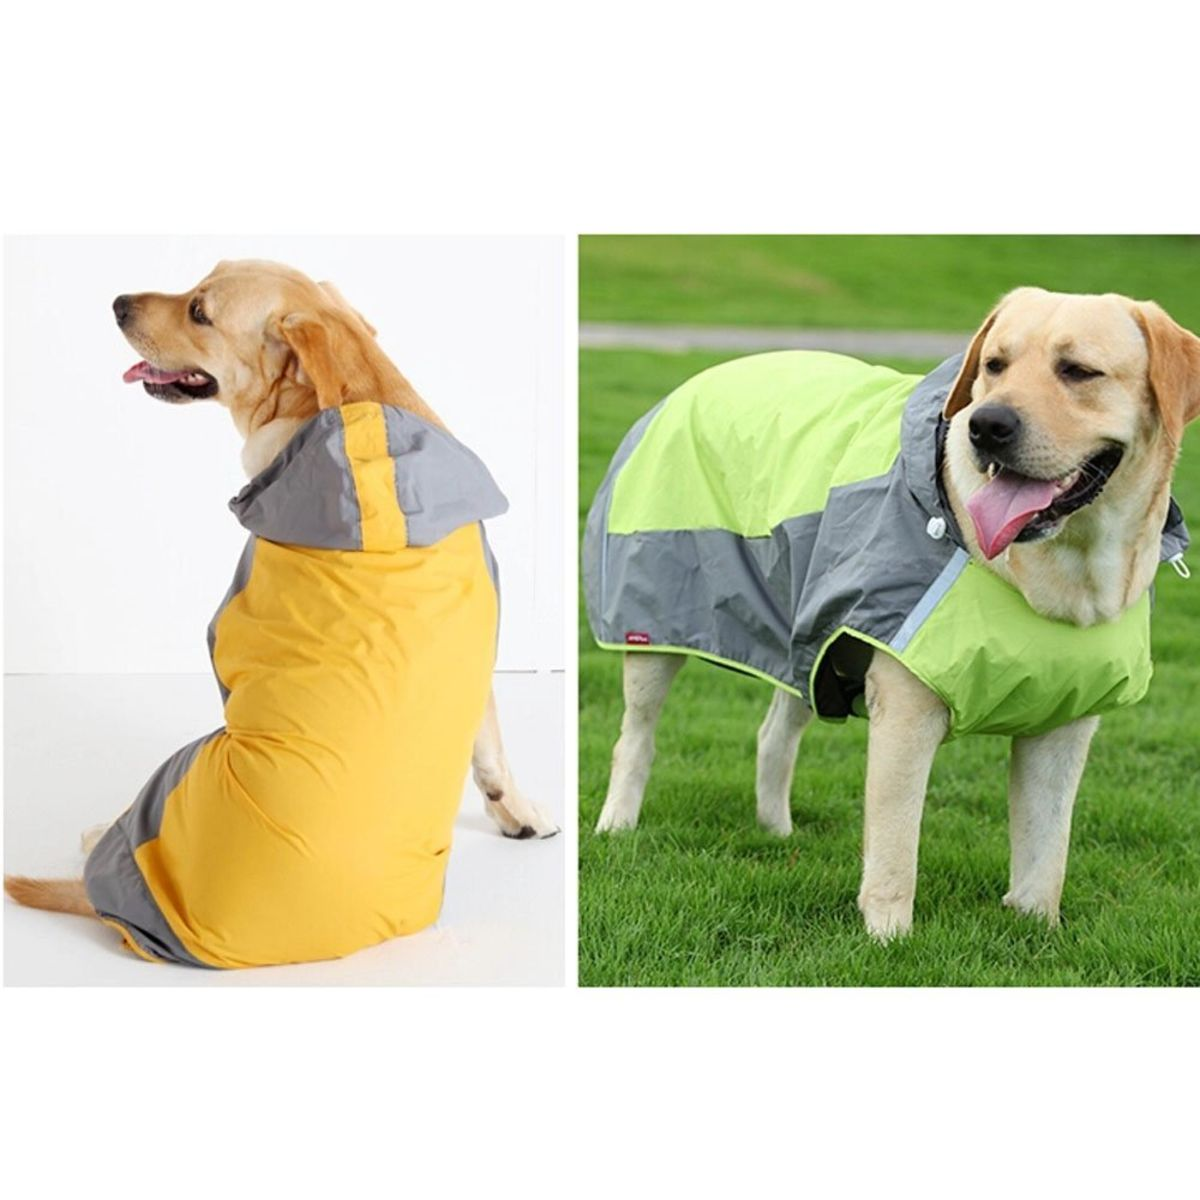 Waterproof Dog Coats With Hoods photo - 3